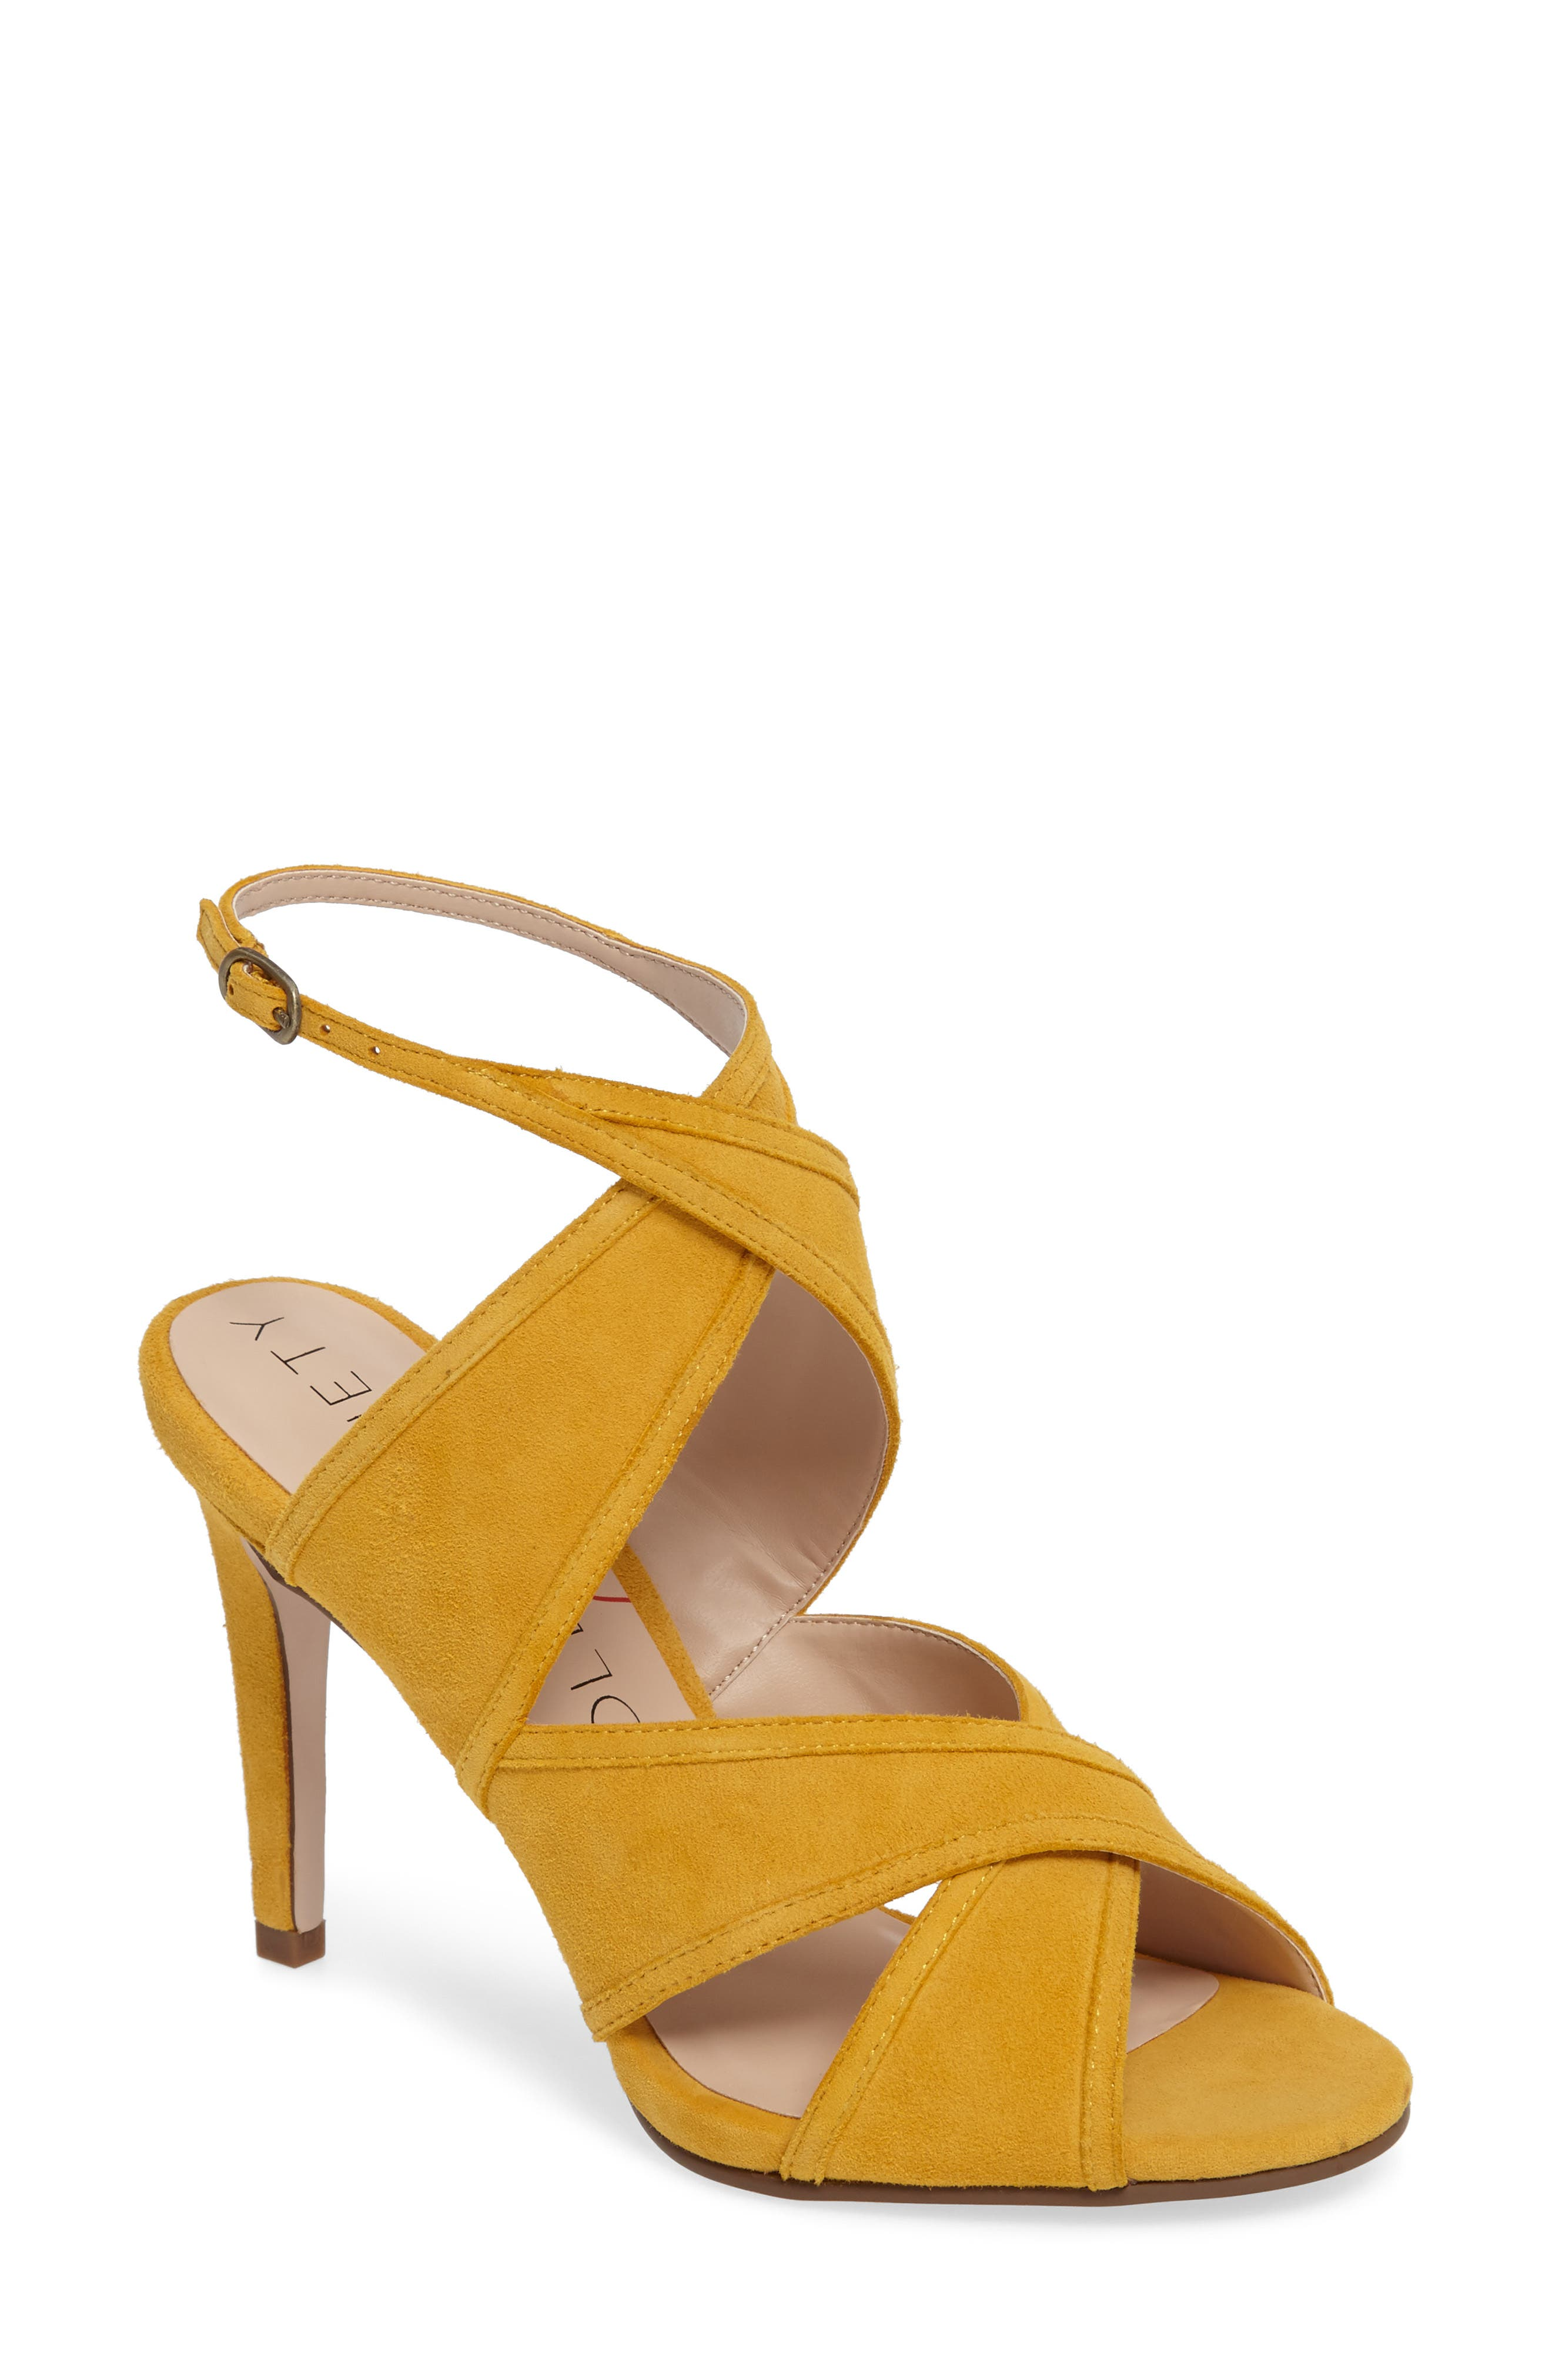 Esme Cross Strap Sandal,                             Main thumbnail 1, color,                             Spicy Mustard Suede